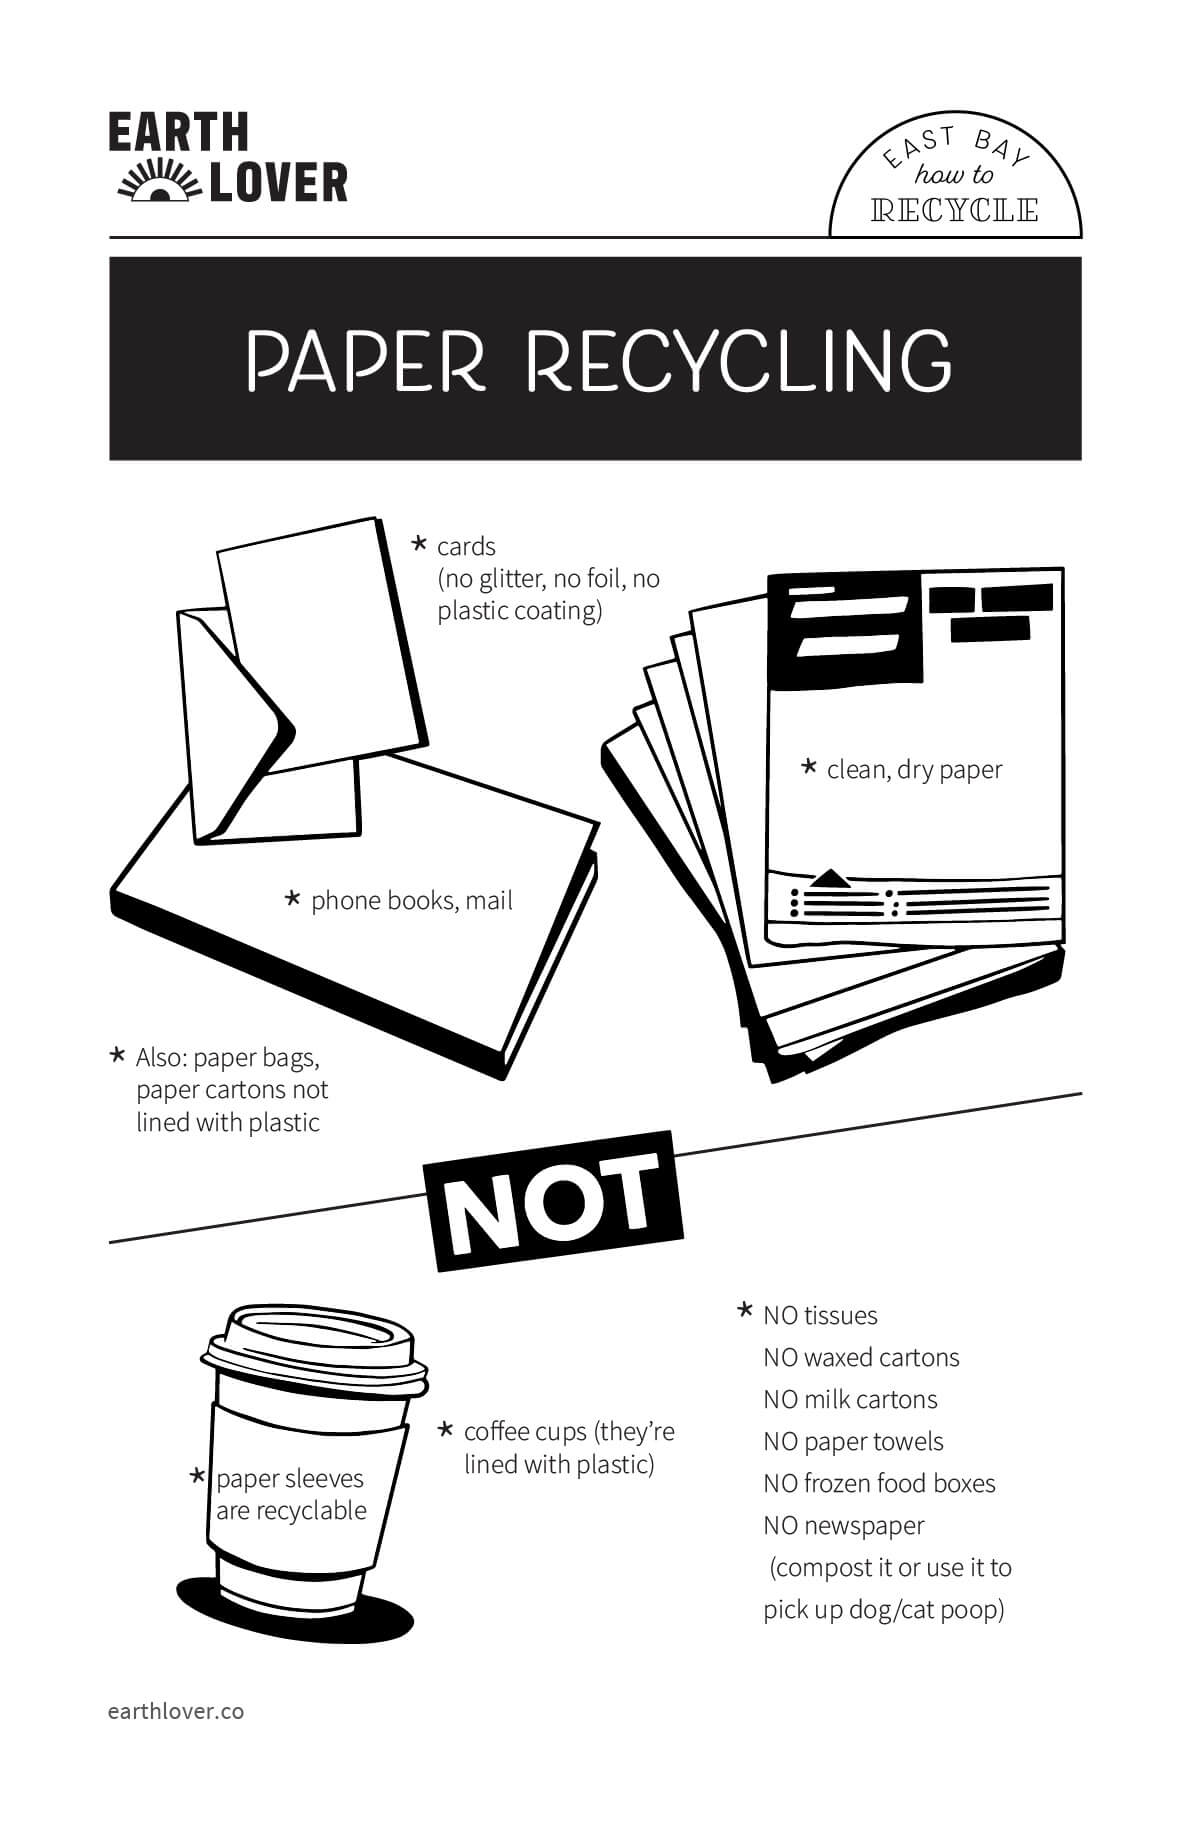 Paper recycling guide